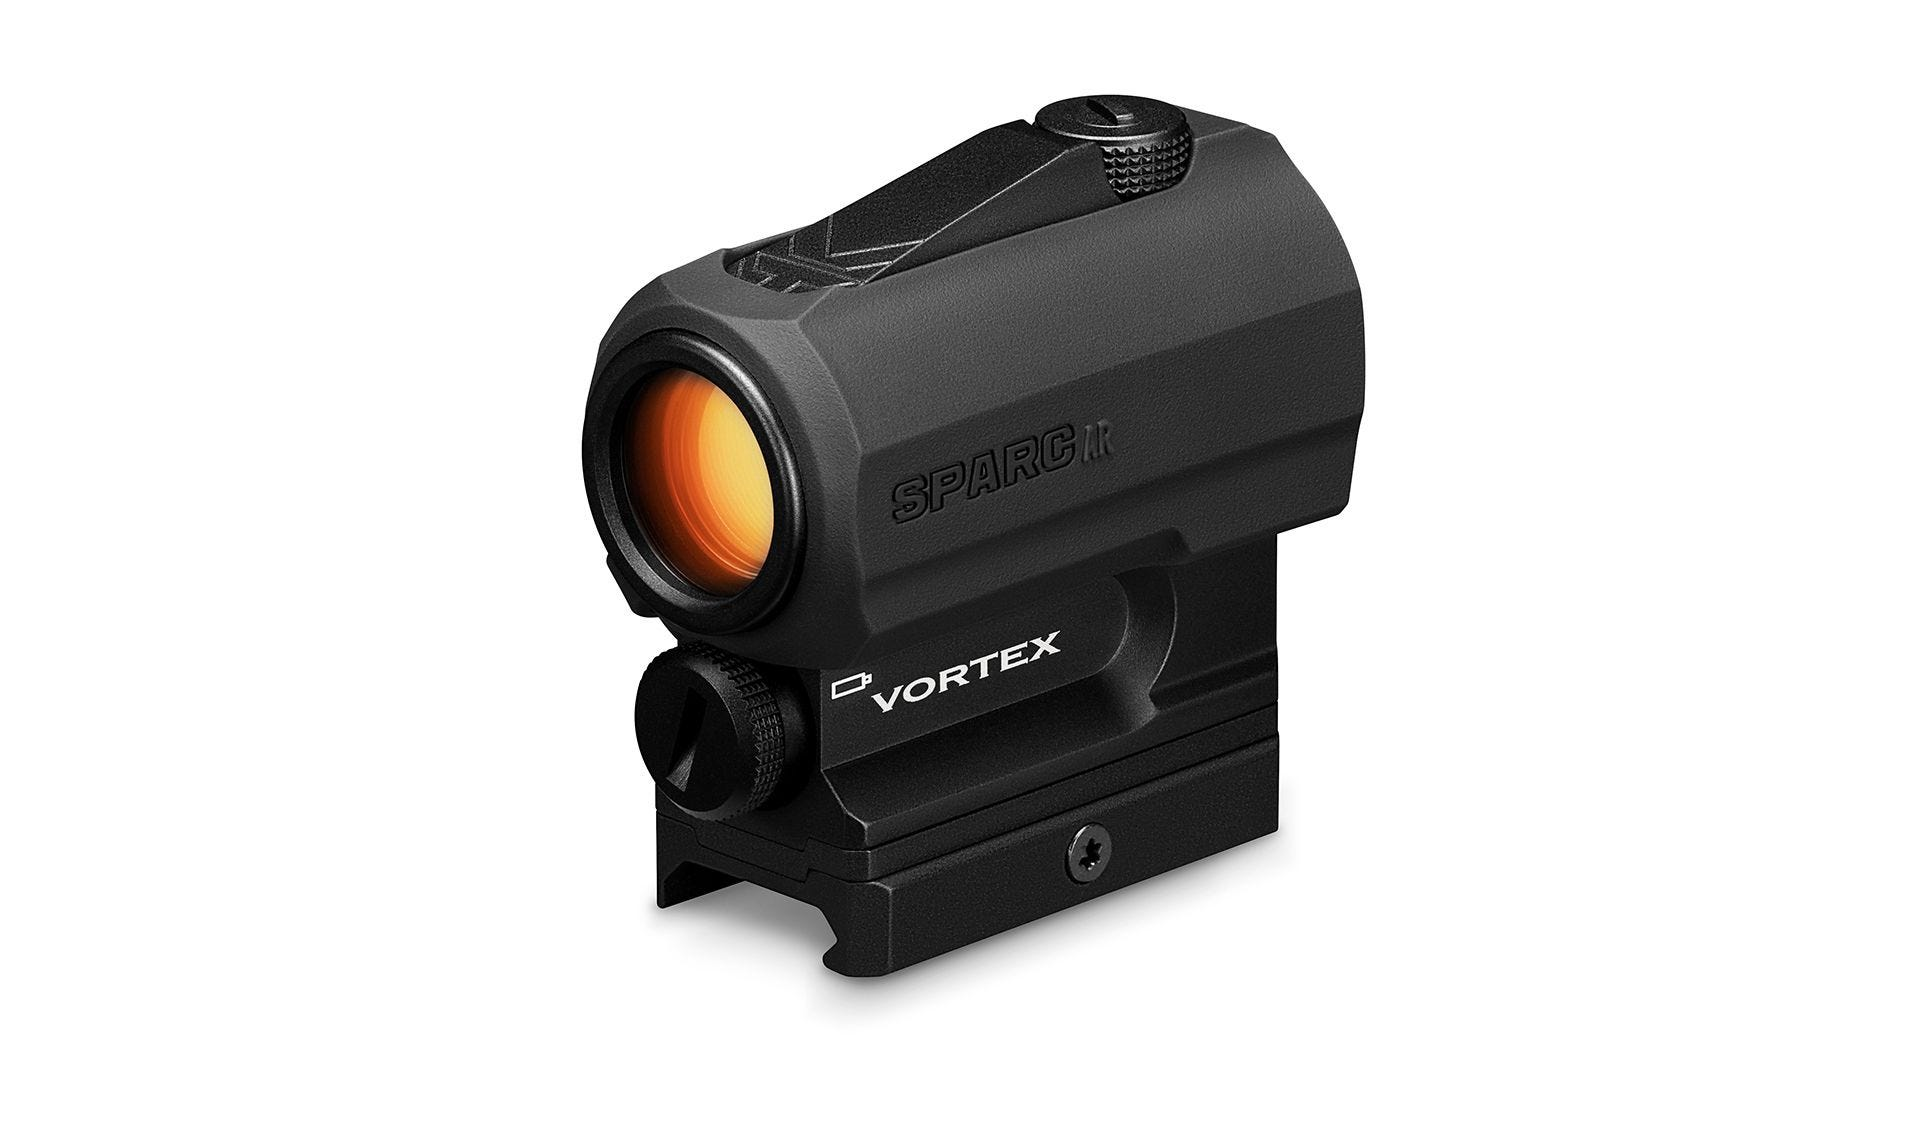 VORTEX SPARC RED DOT-LED UPGRADE